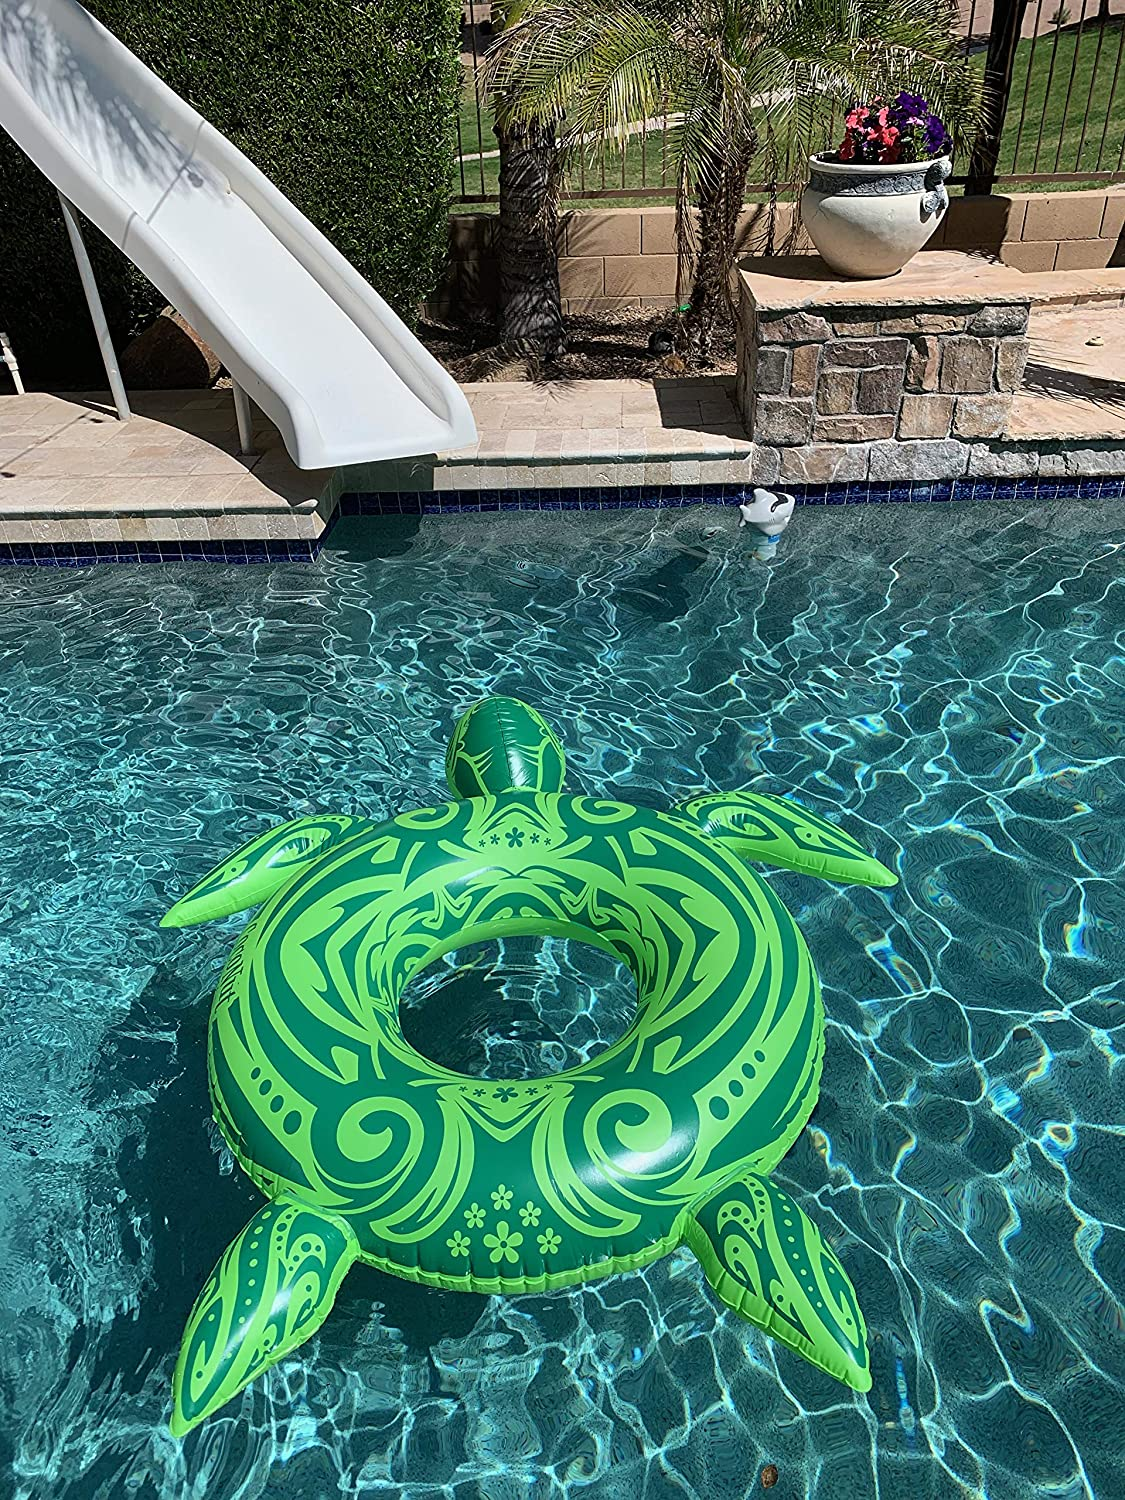 Inflatable Pool Float Sea Turtle - Rafts for Swimming Pool or Beach Summer  Time Party Fun - Adults Lake Floats or River Raft Floats - Floating in ...